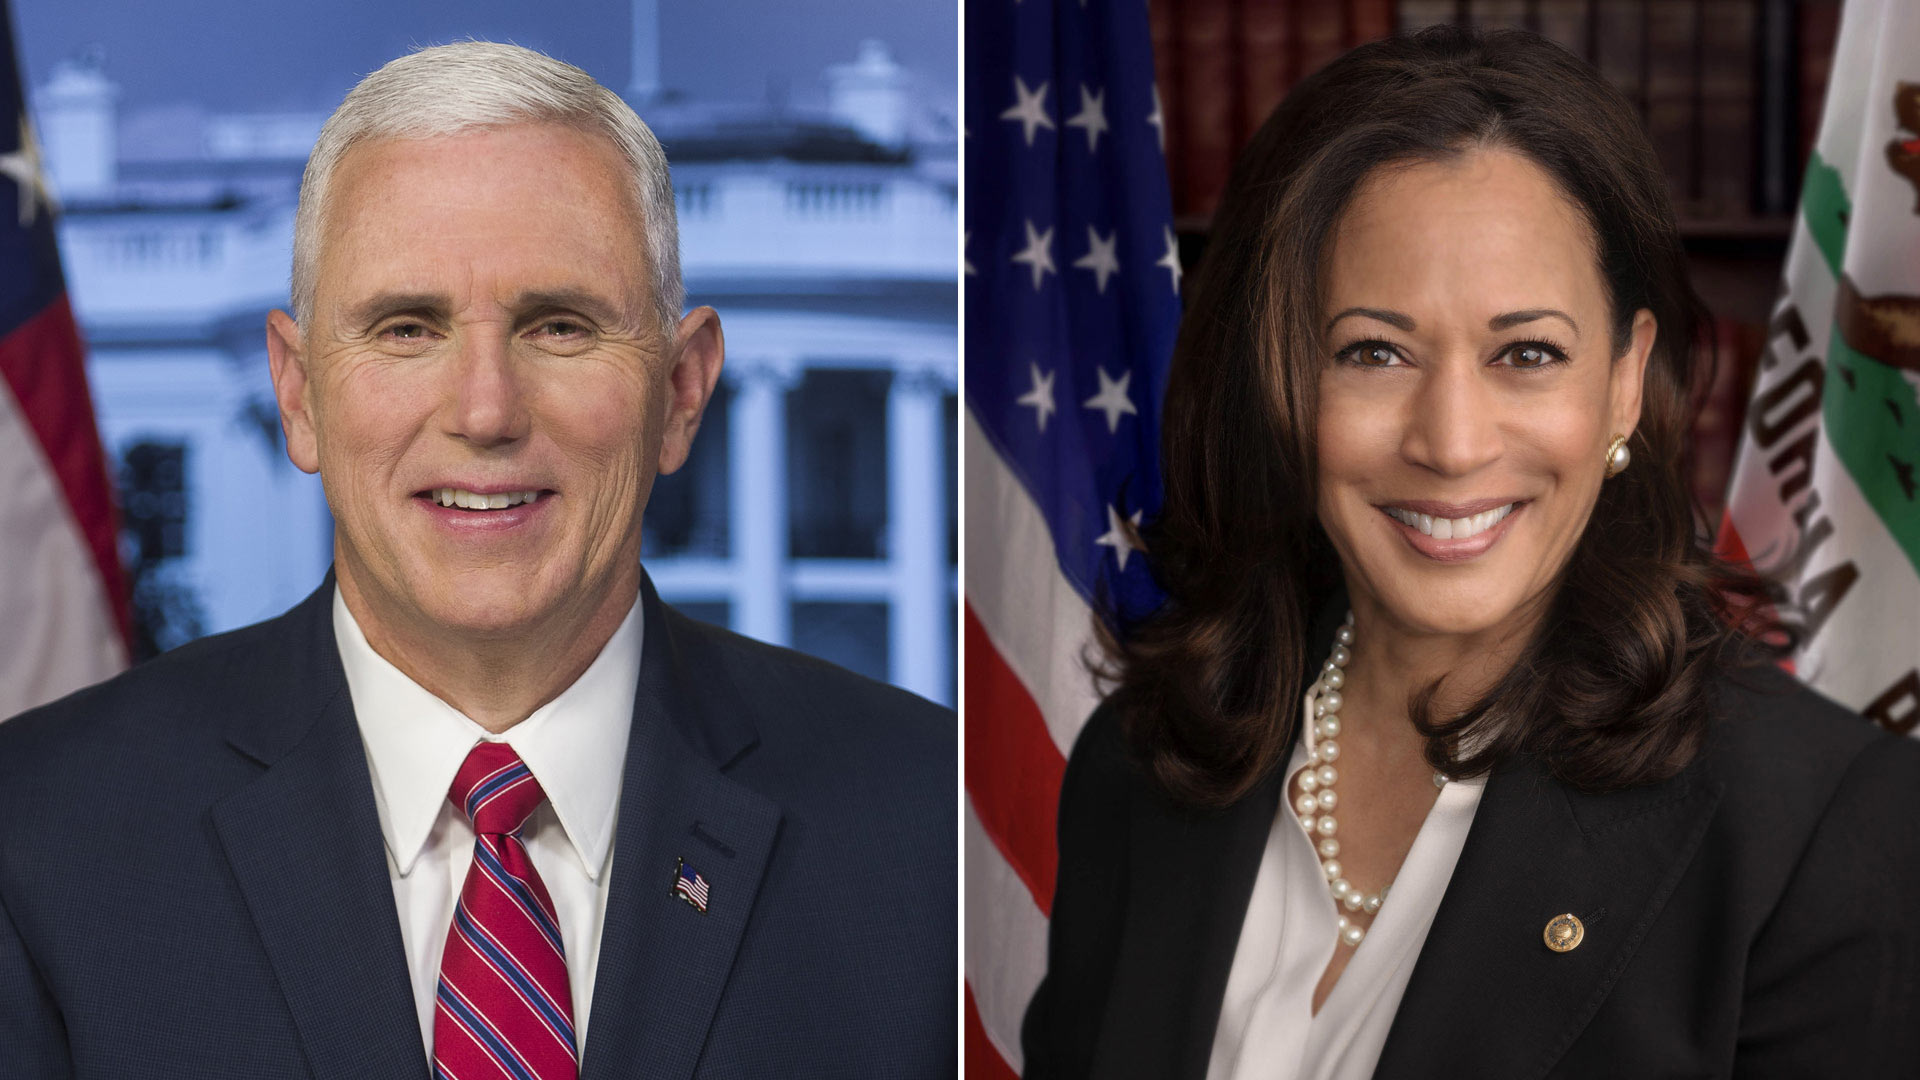 Republican Vice President Mike Pence (left), and Democratic Vice Presidential Nominee Kamala Harris (right)